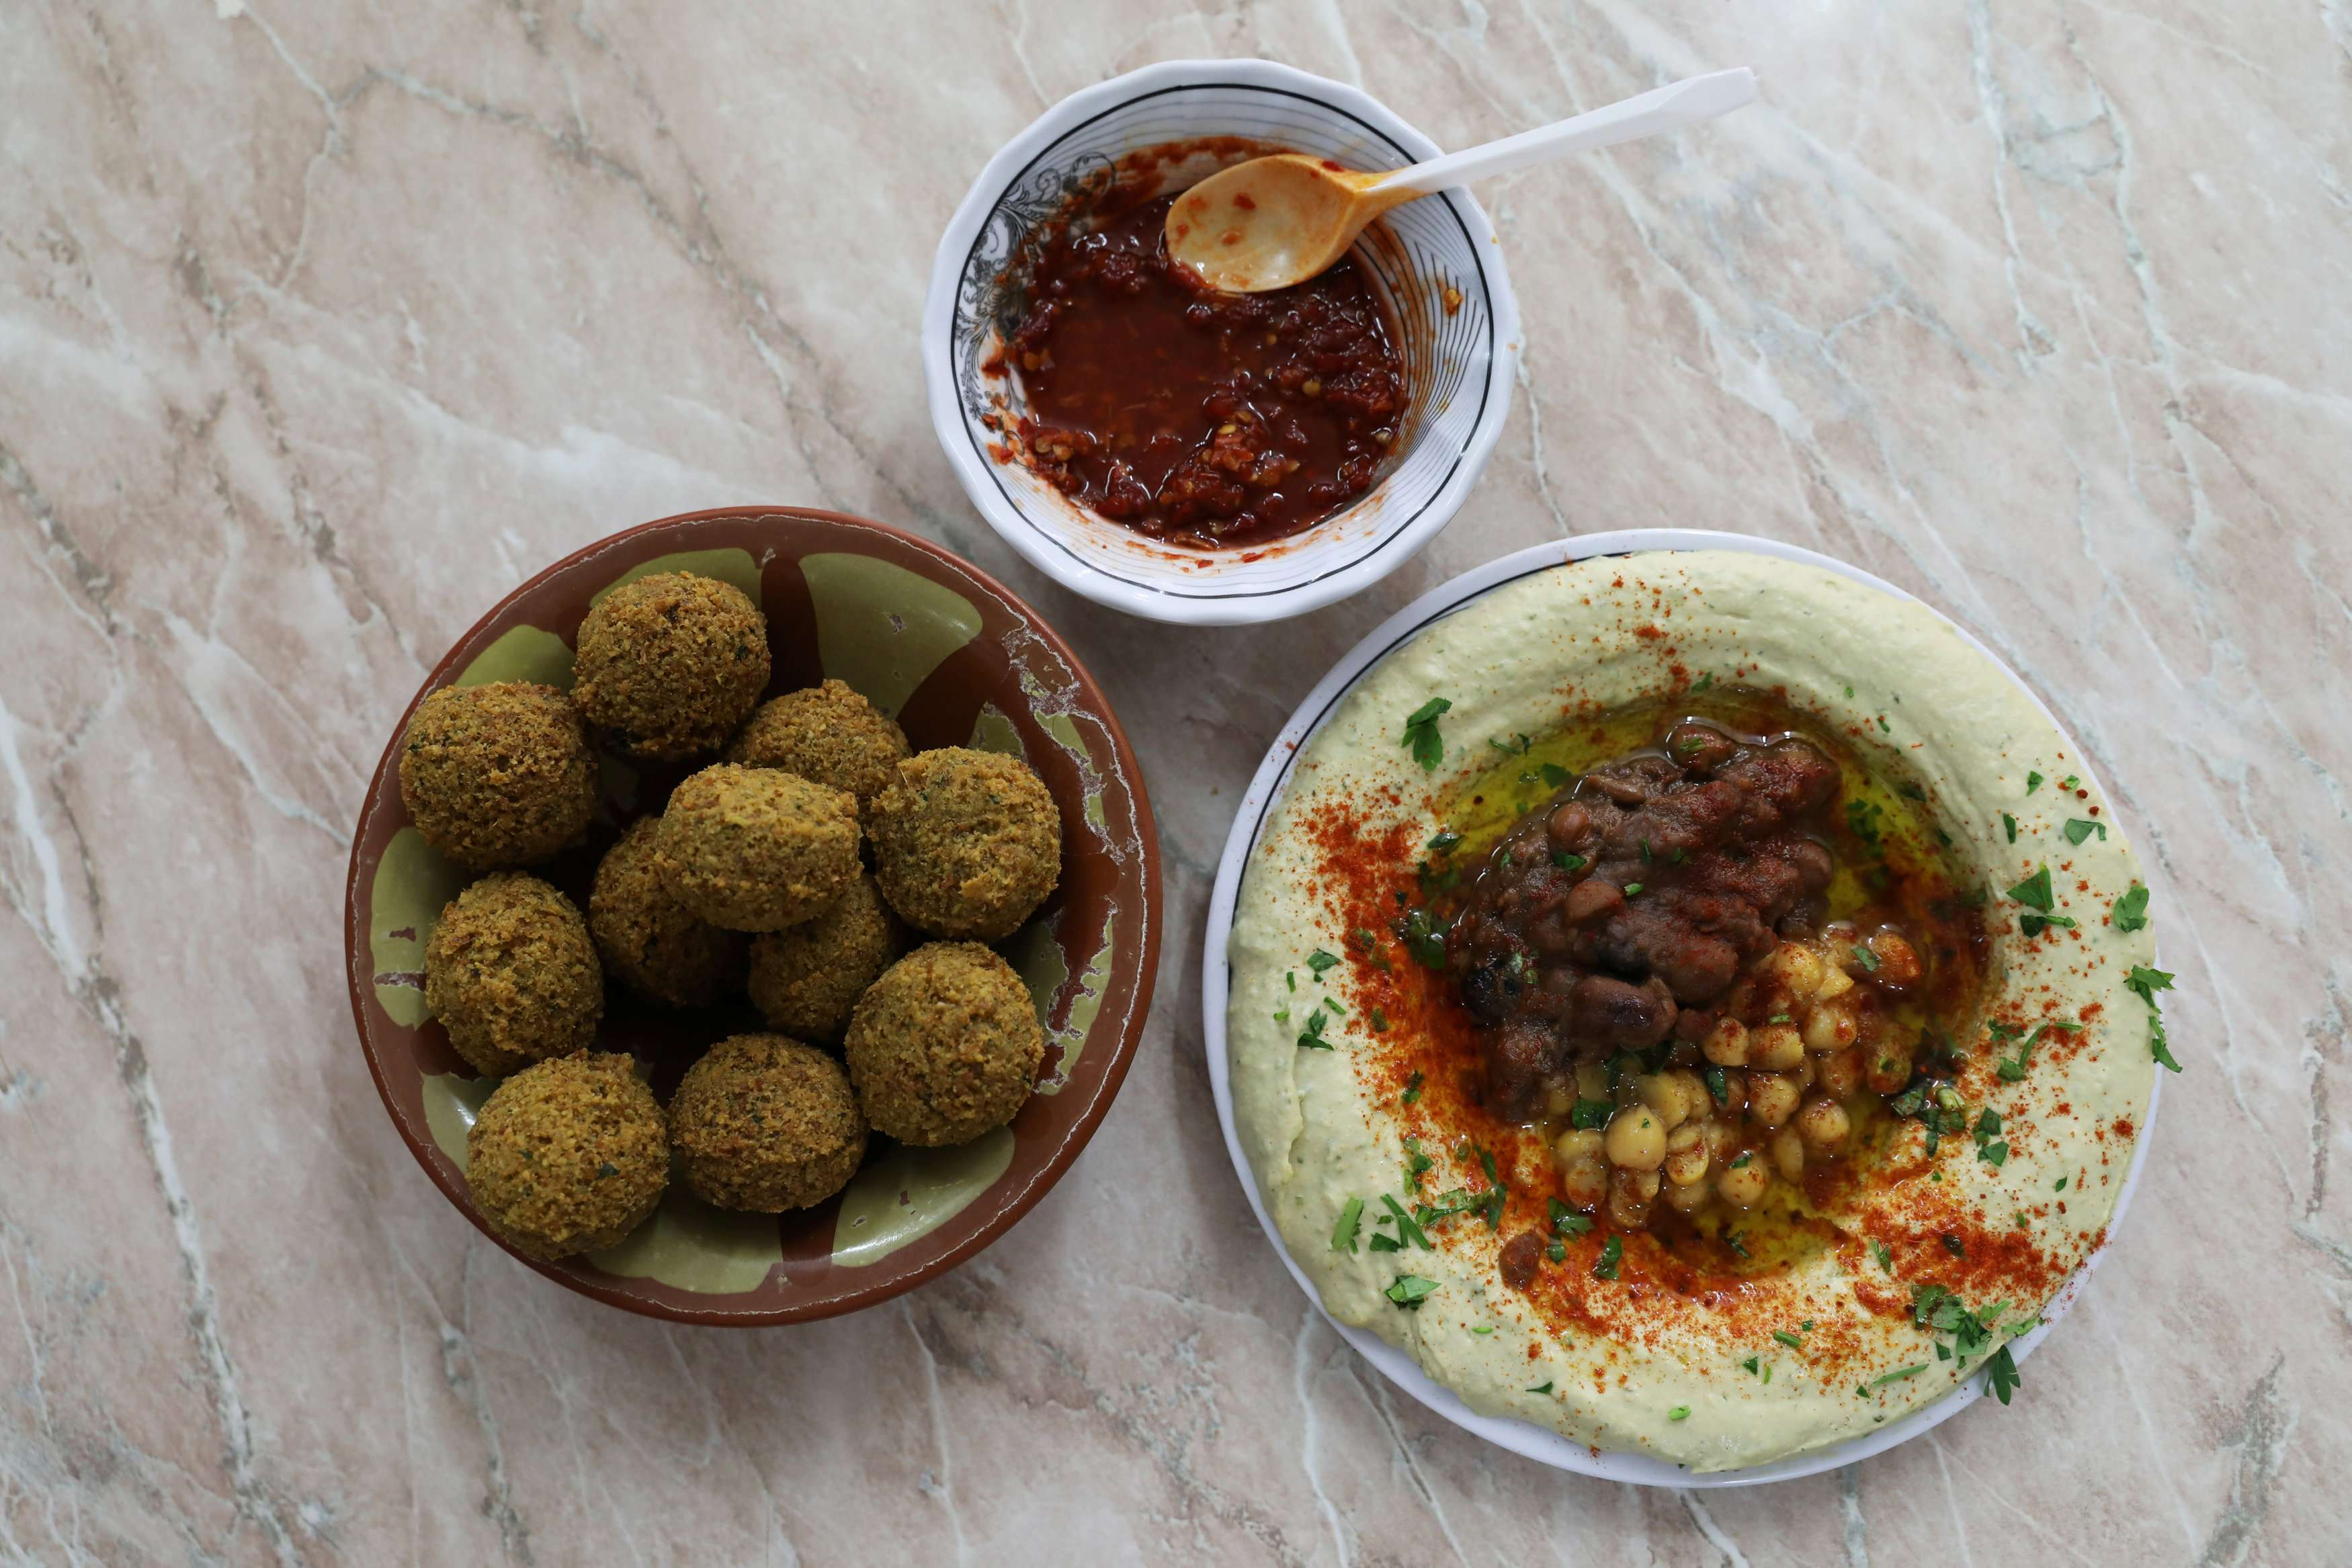 Chickpea-based hummus and falafel at the famed Abu Shukri restaurant in Jerusalem's Old City. (Reuters)